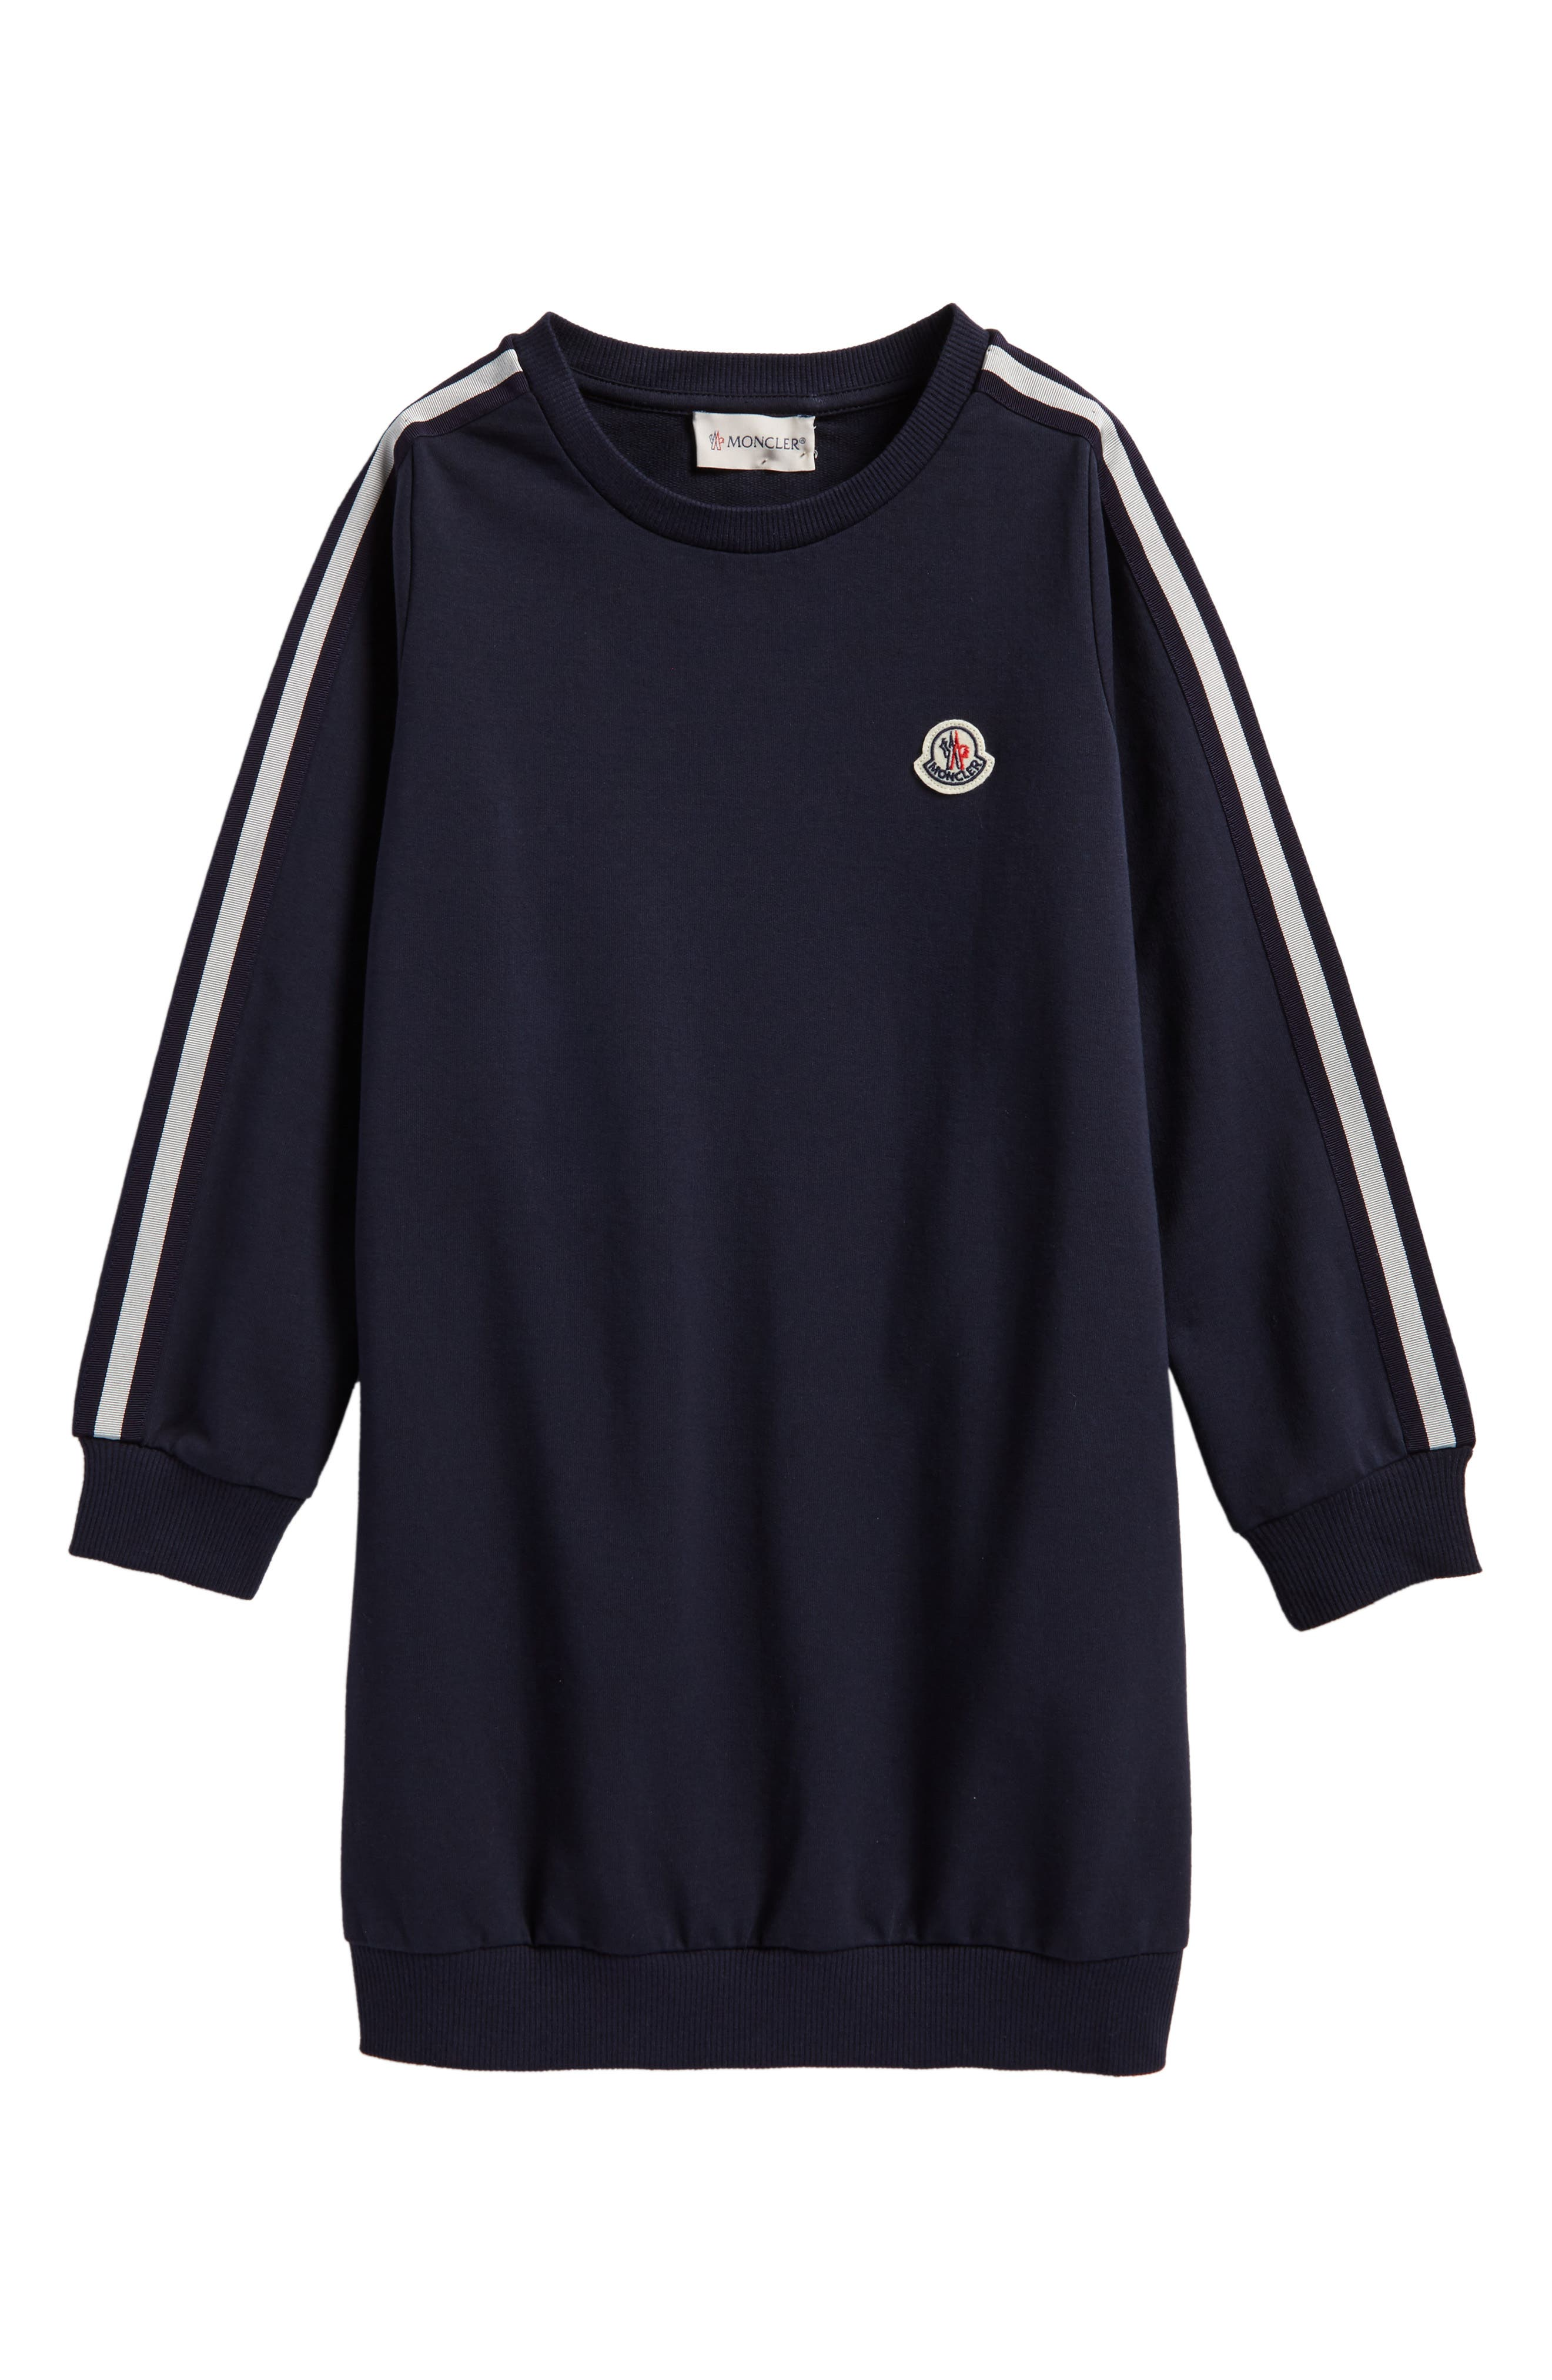 Moncler Sweatshirt Dress (Little Girls & Big Girls)